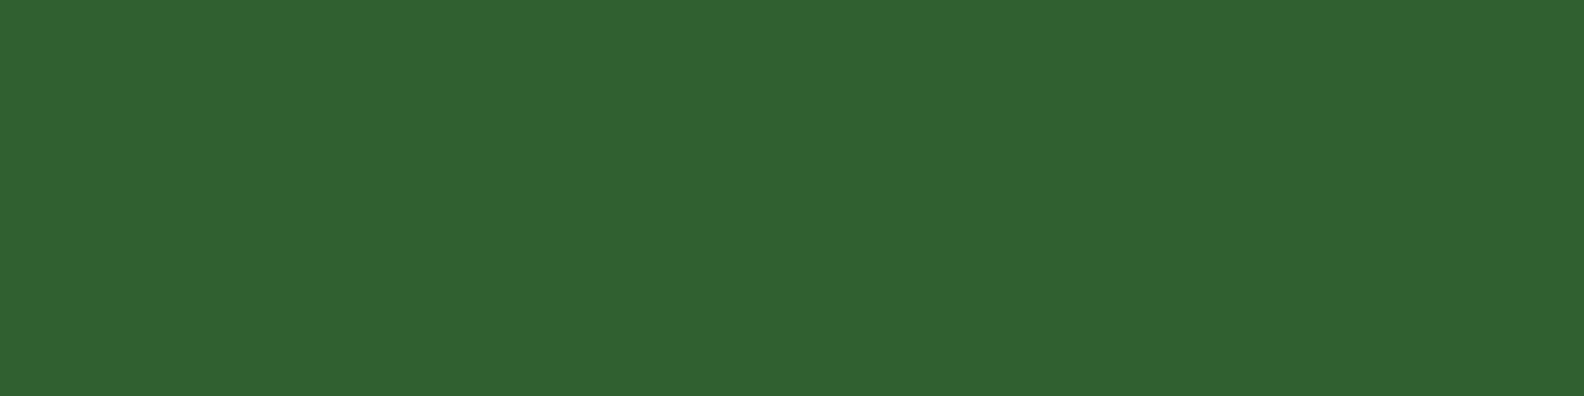 1584x396 Mughal Green Solid Color Background